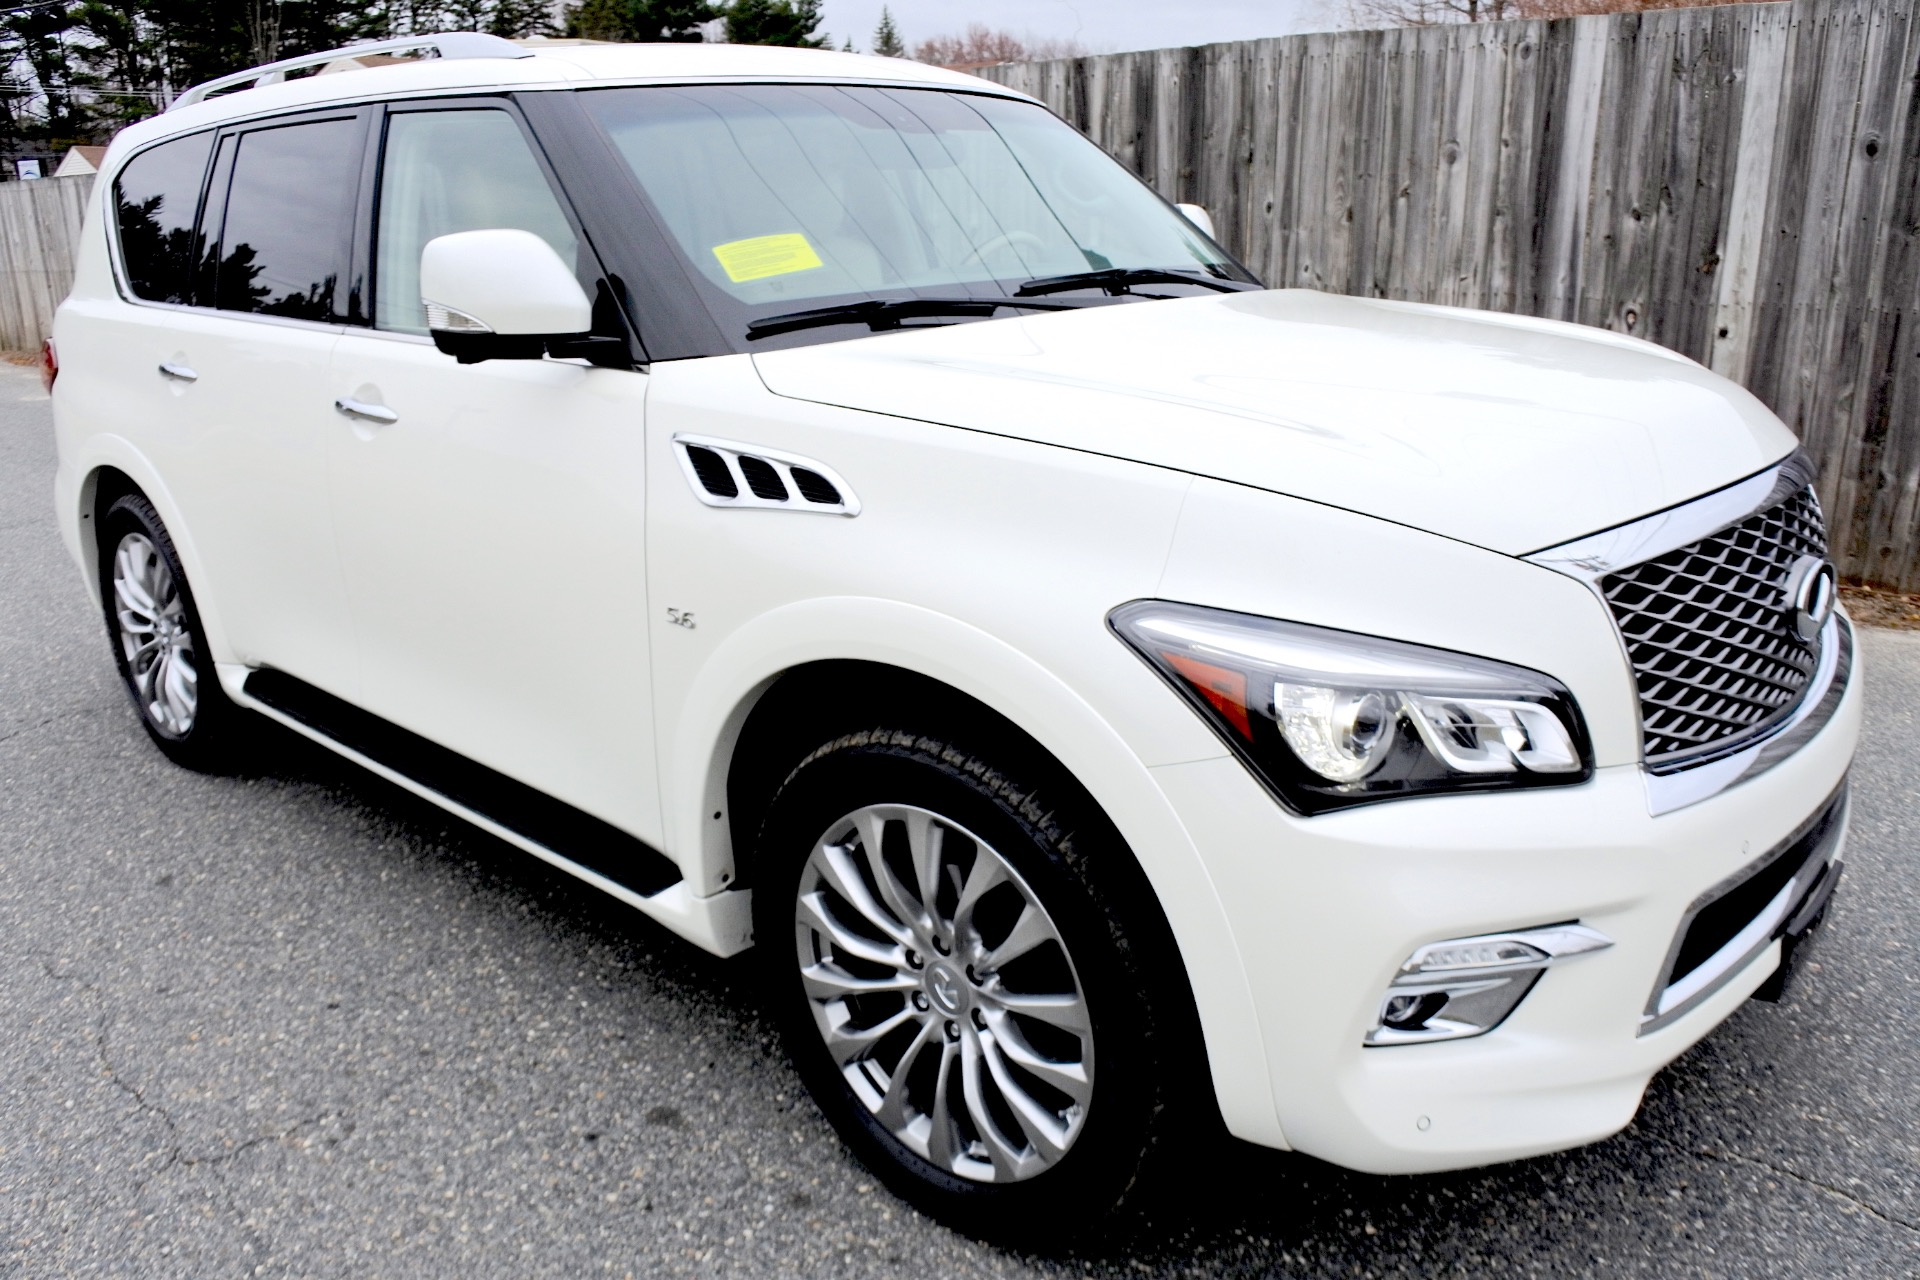 Used 2015 Infiniti Qx80 Limited 4WD Used 2015 Infiniti Qx80 Limited 4WD for sale  at Metro West Motorcars LLC in Shrewsbury MA 7